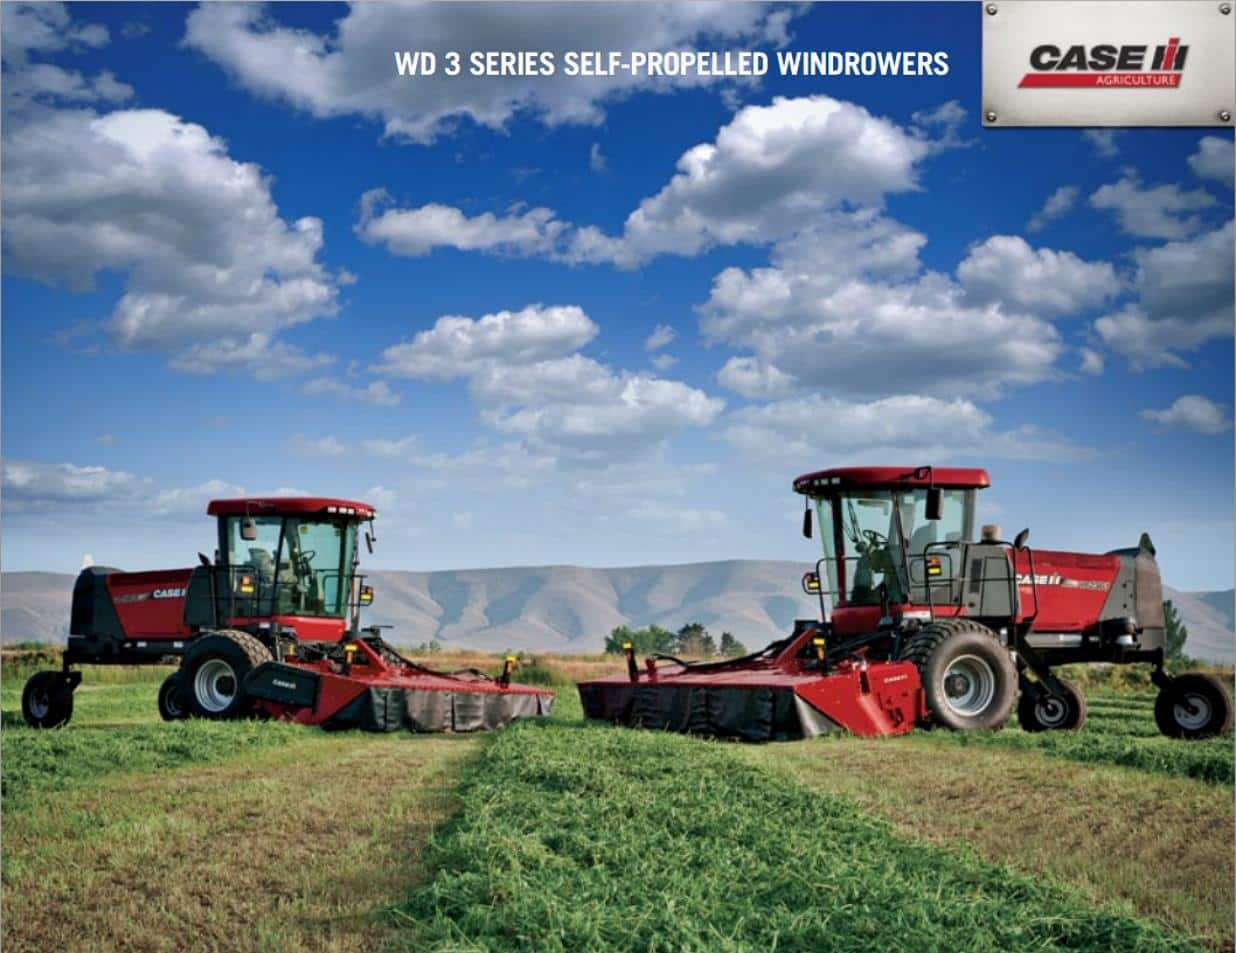 WD 3 Series Self Propelled Windrowers